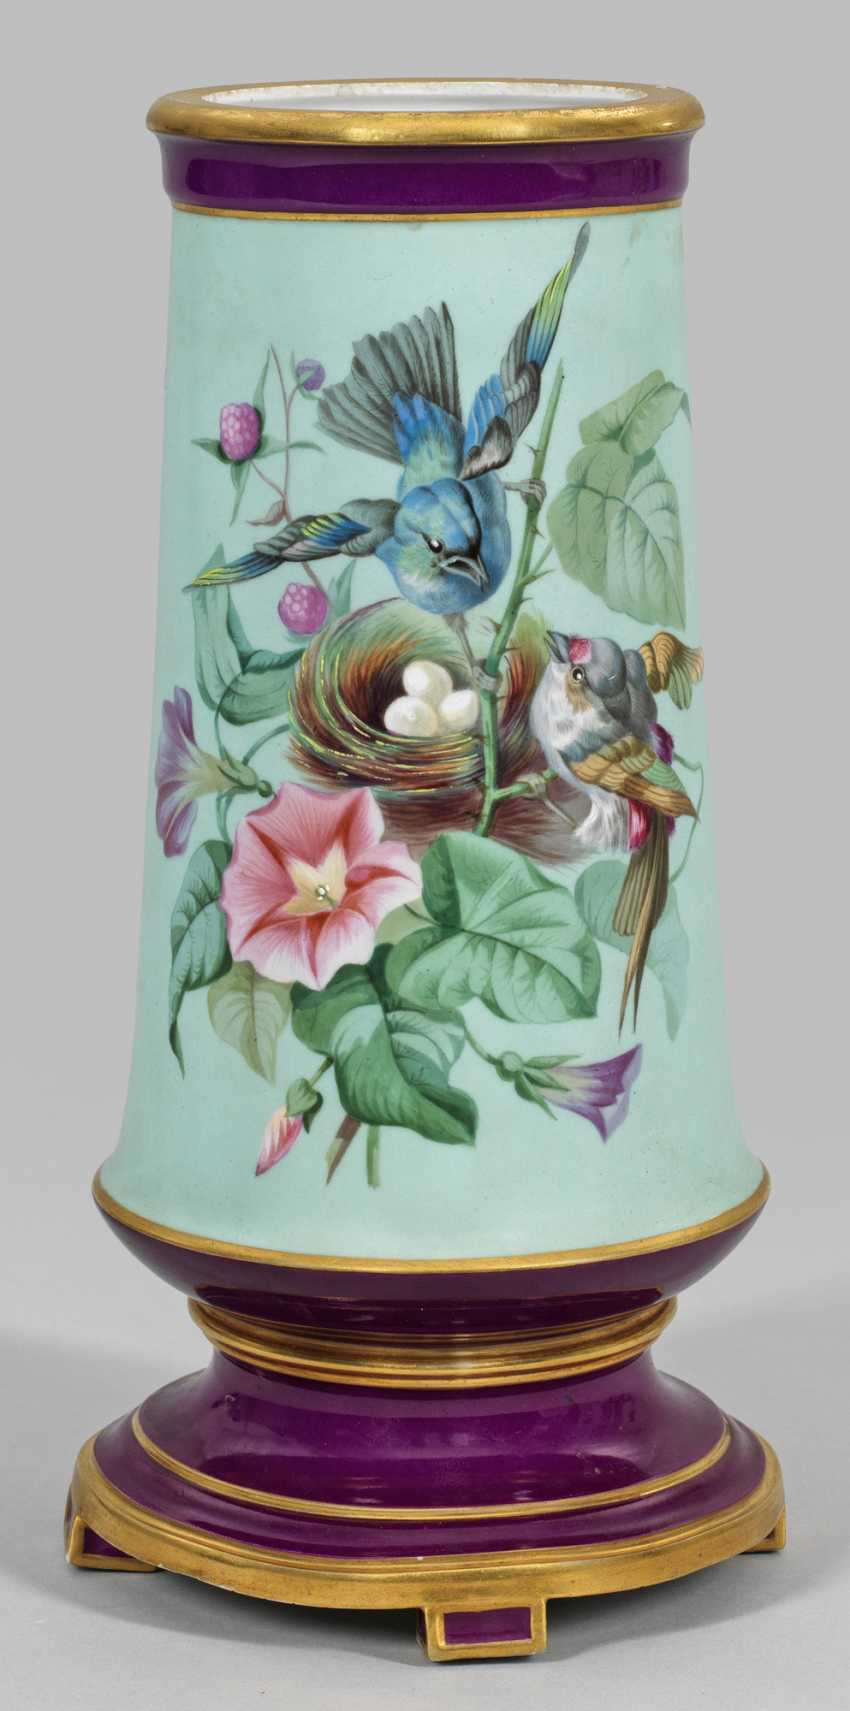 Russian vase with bird and floral decor - photo 1